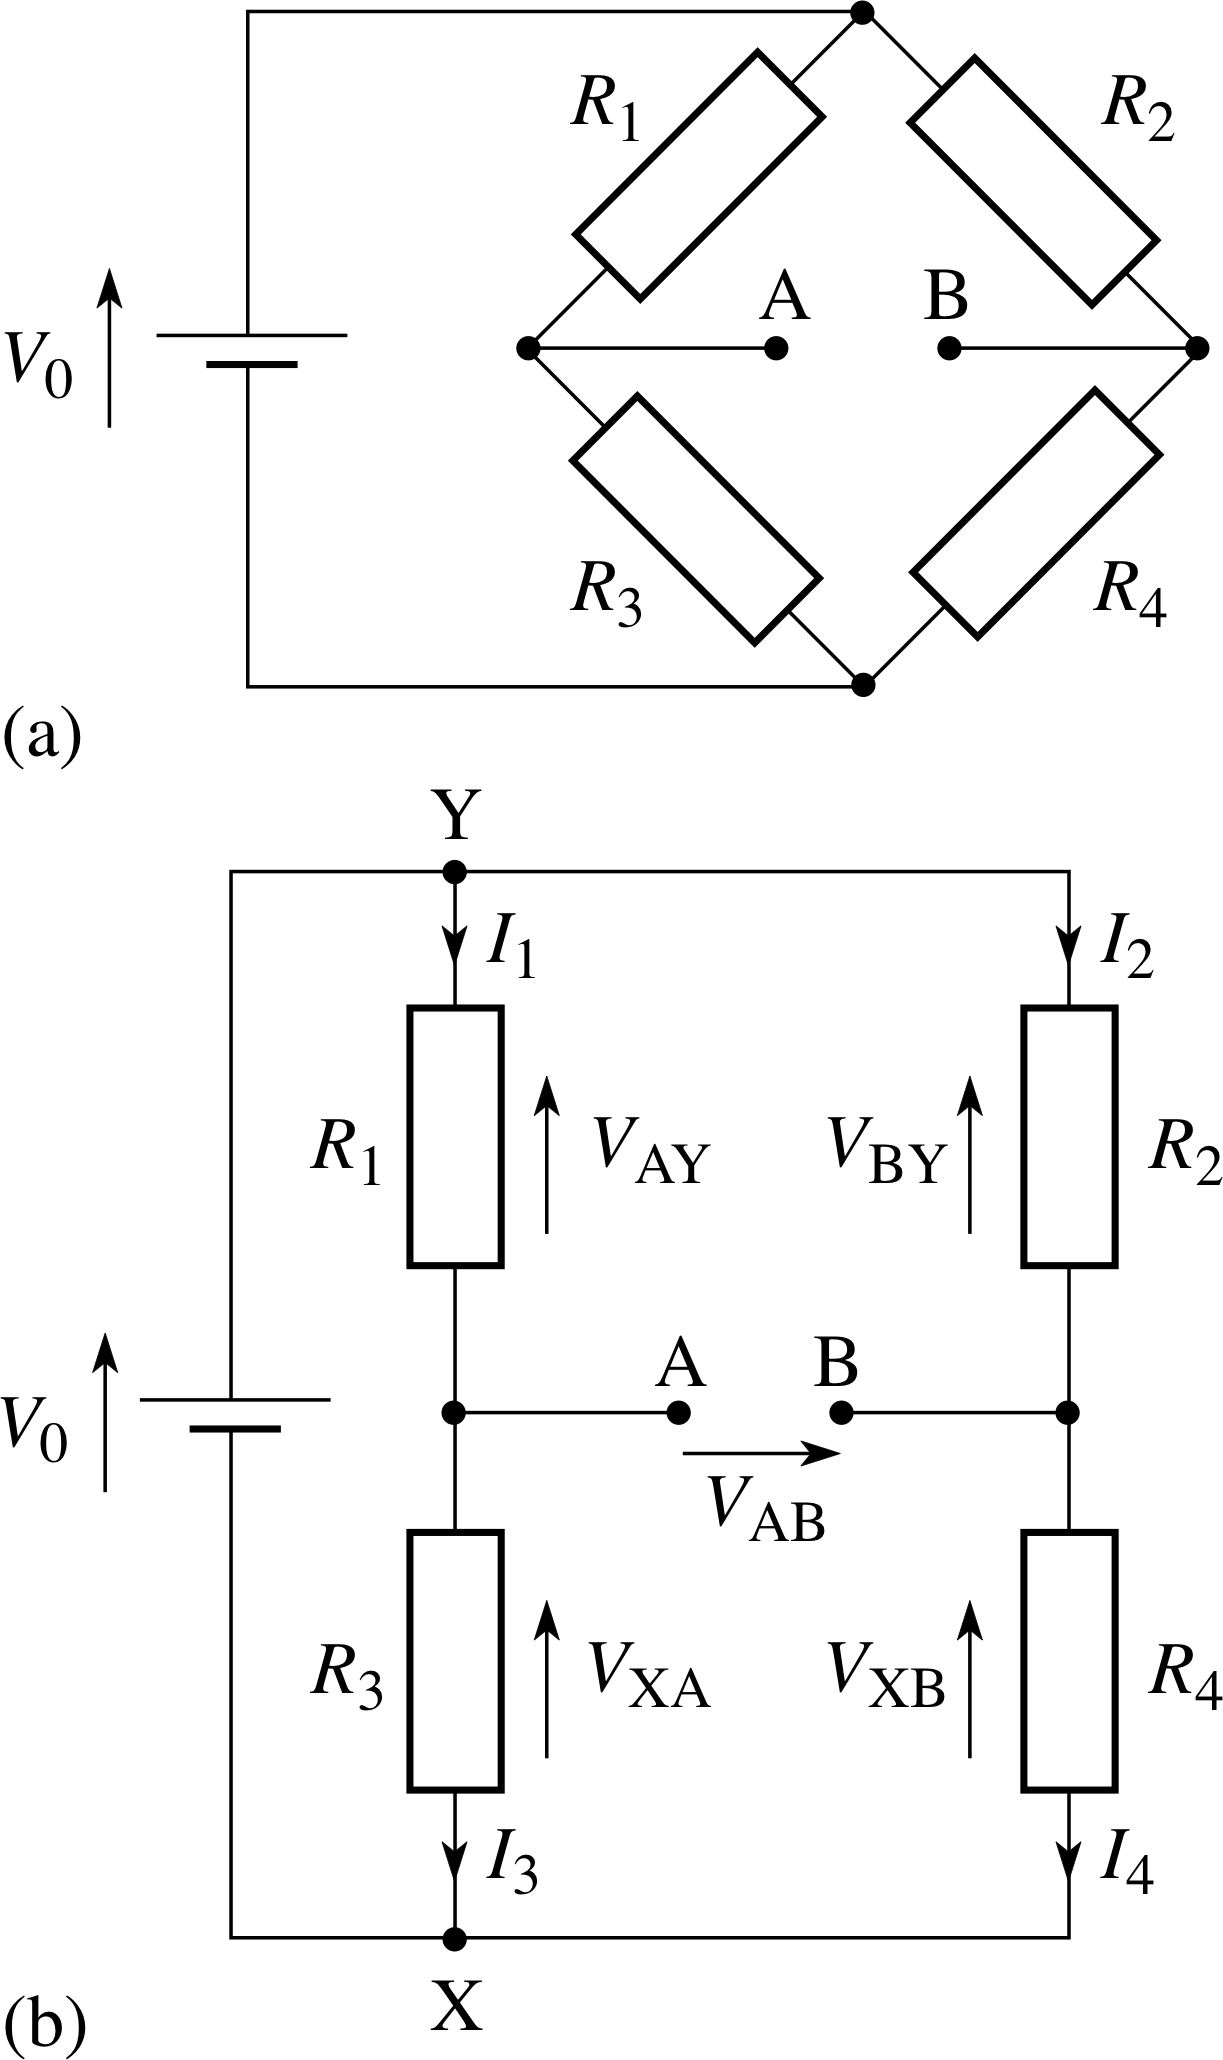 Pplato Flap Phys 41 Dc Circuits And Currents This Is Not So For A Parallel Circuit Bulbs Can Continually Be Added Figure 14 The Wheatstone Bridge